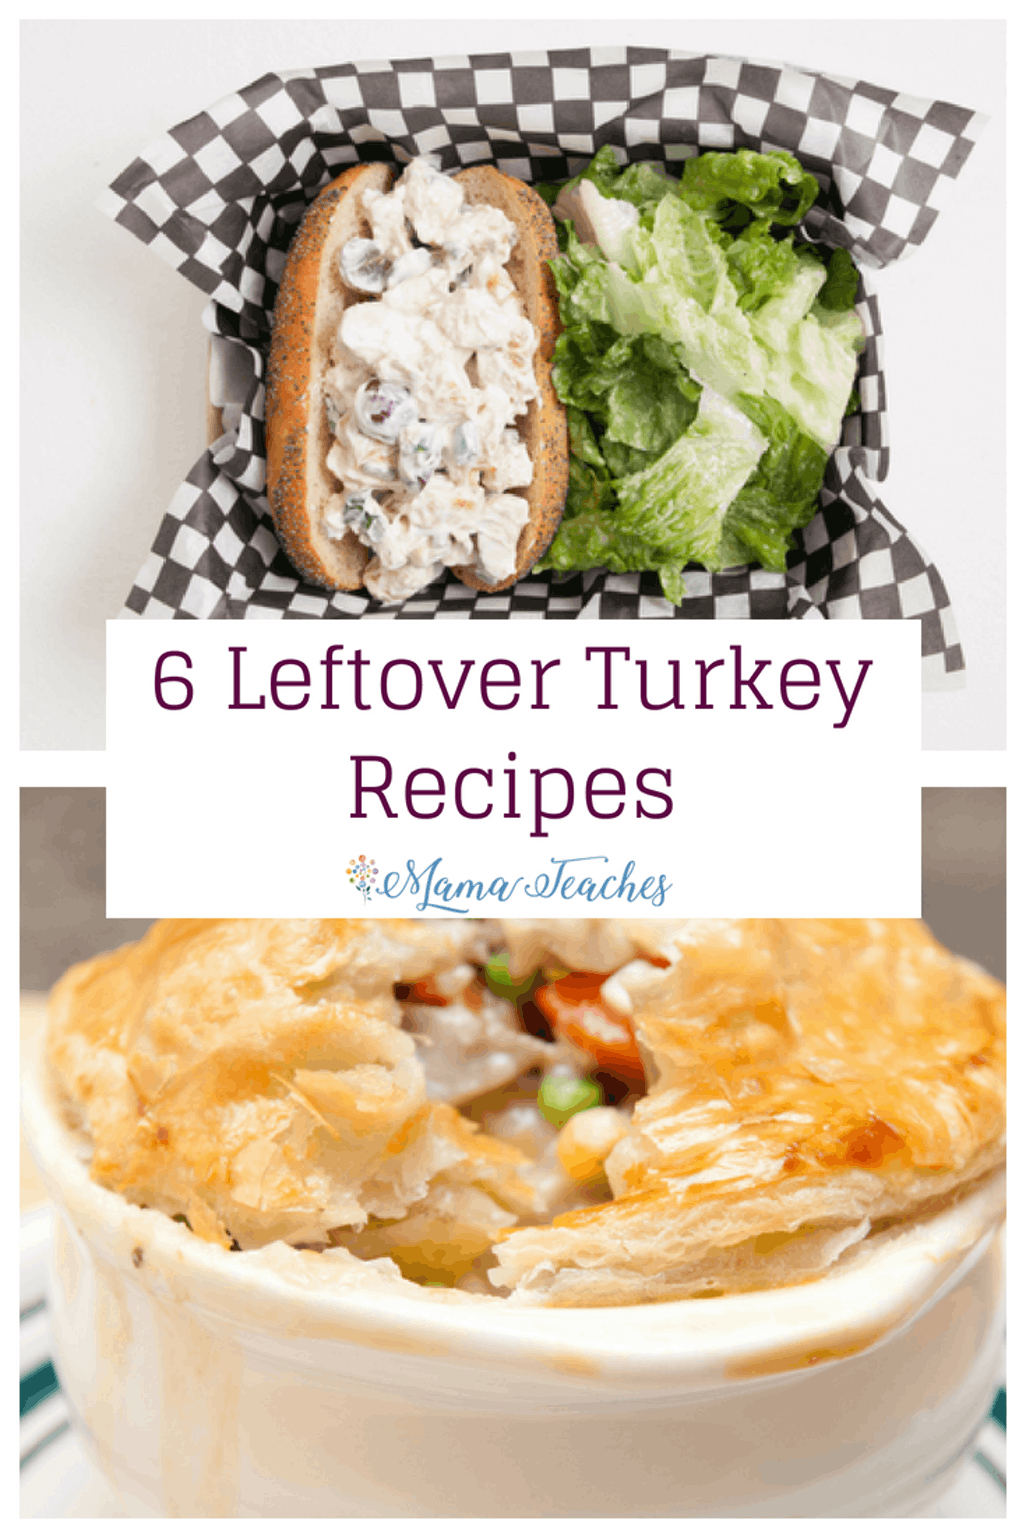 Leftover Turkey Recipes You Have to Try